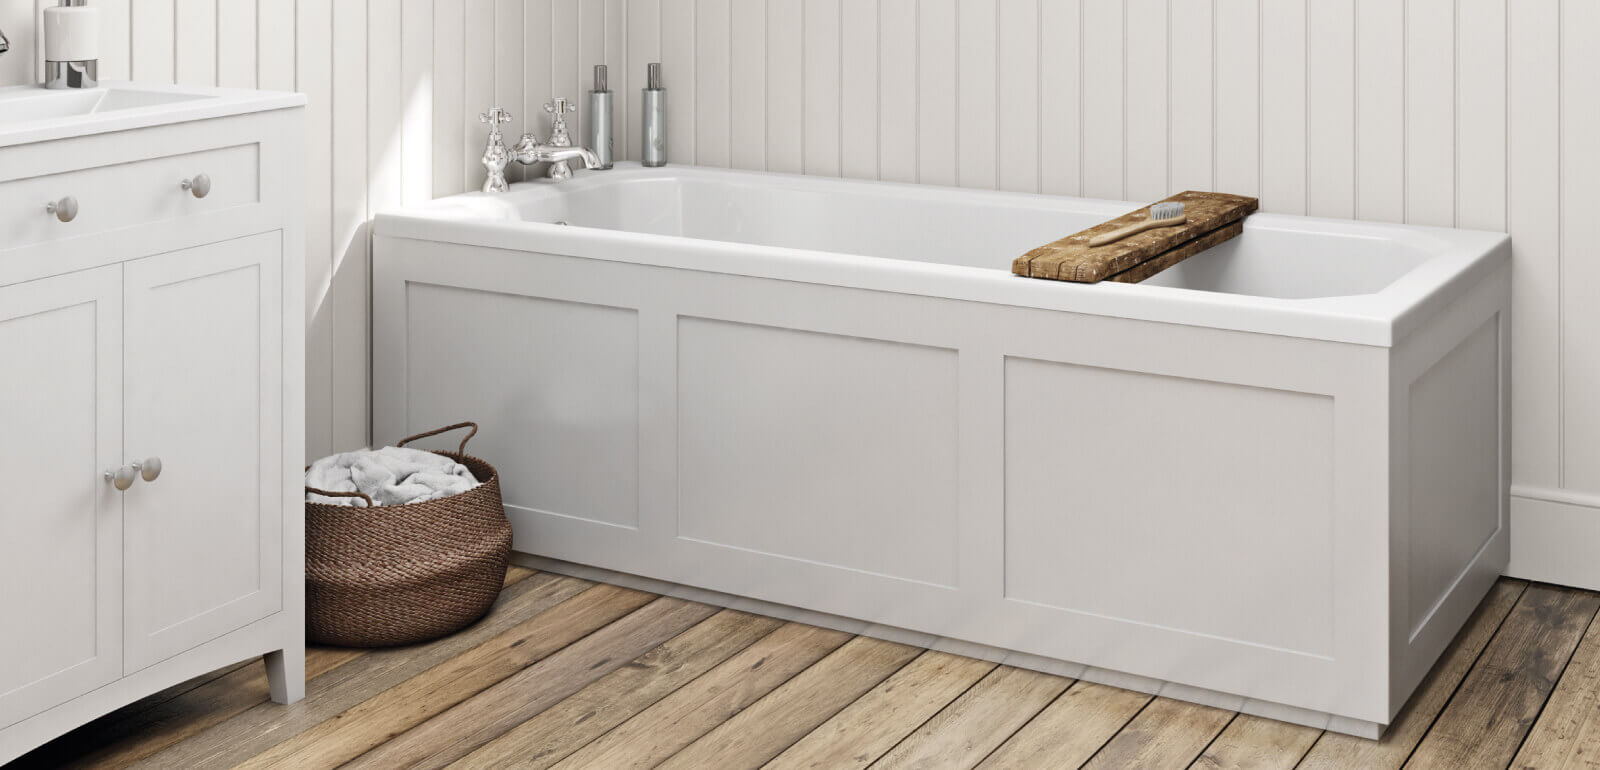 Best Types Of Bathtubs Prices Styles Pros Cons - Bathtub styles photos